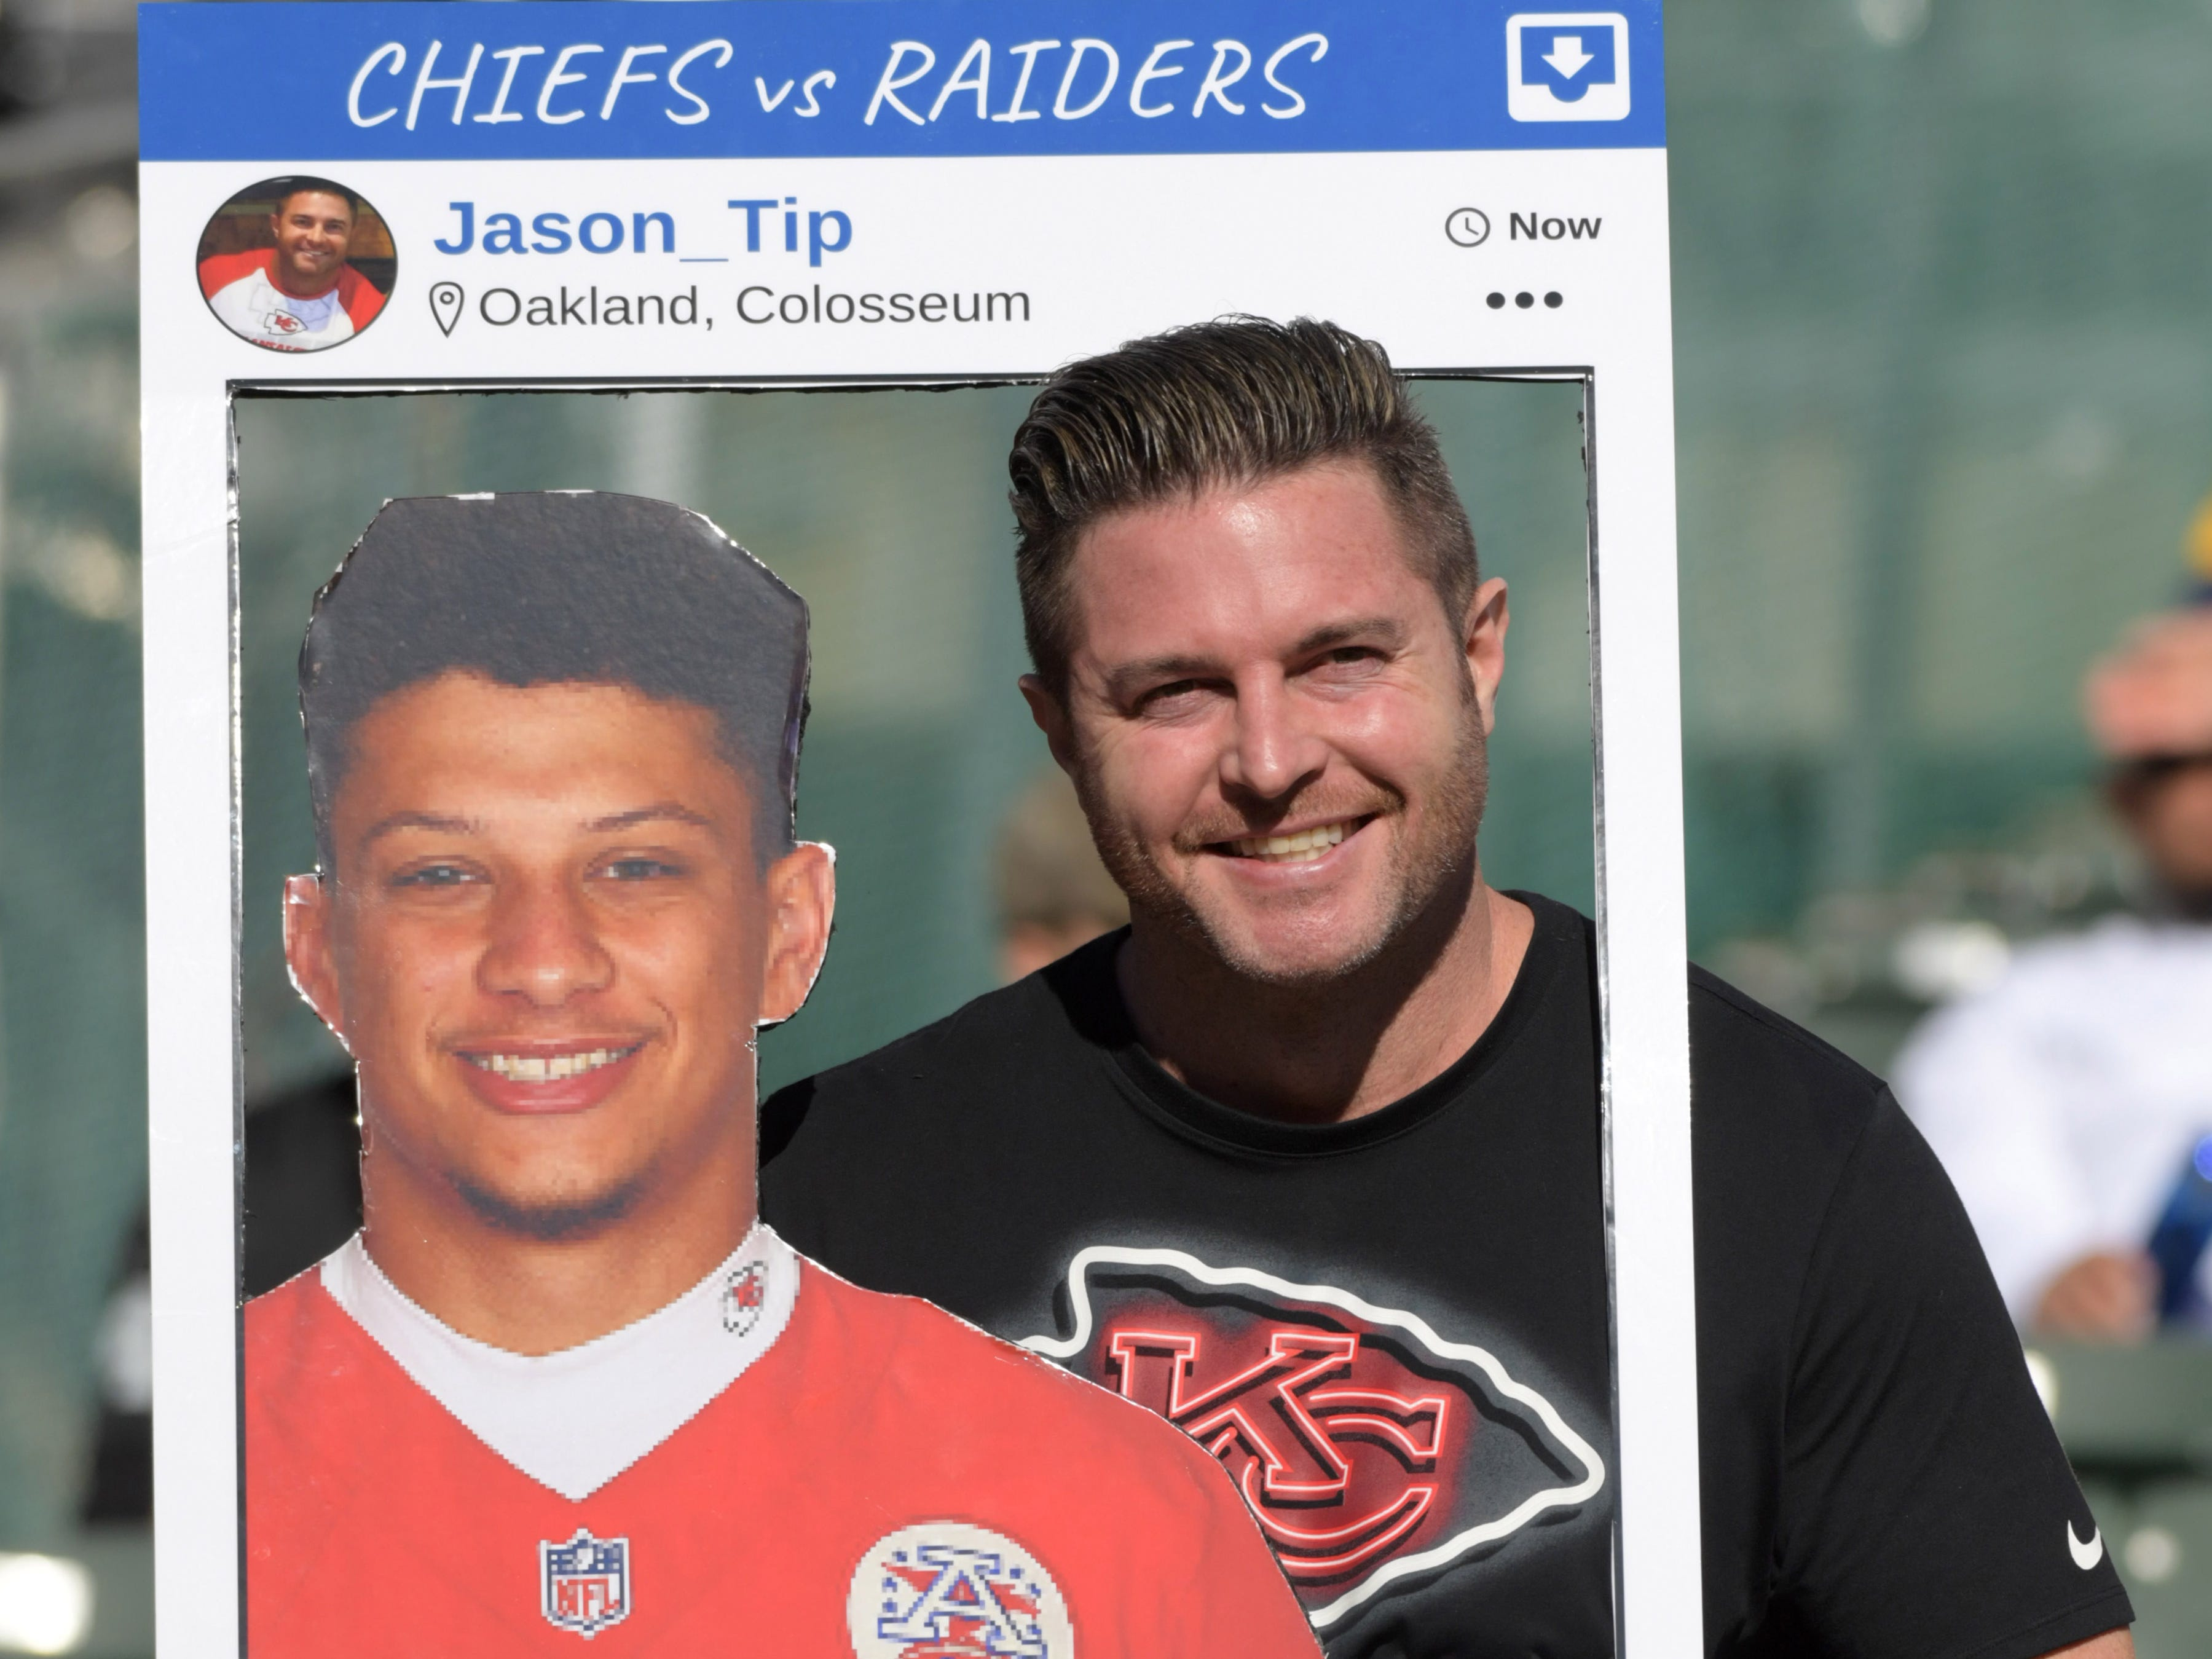 A fan of the Kansas City Chiefs poses an Instagram frame with cutout of quarterback Patrick Mahomes during the game against the Oakland Raiders at Oakland-Alameda County Coliseum.